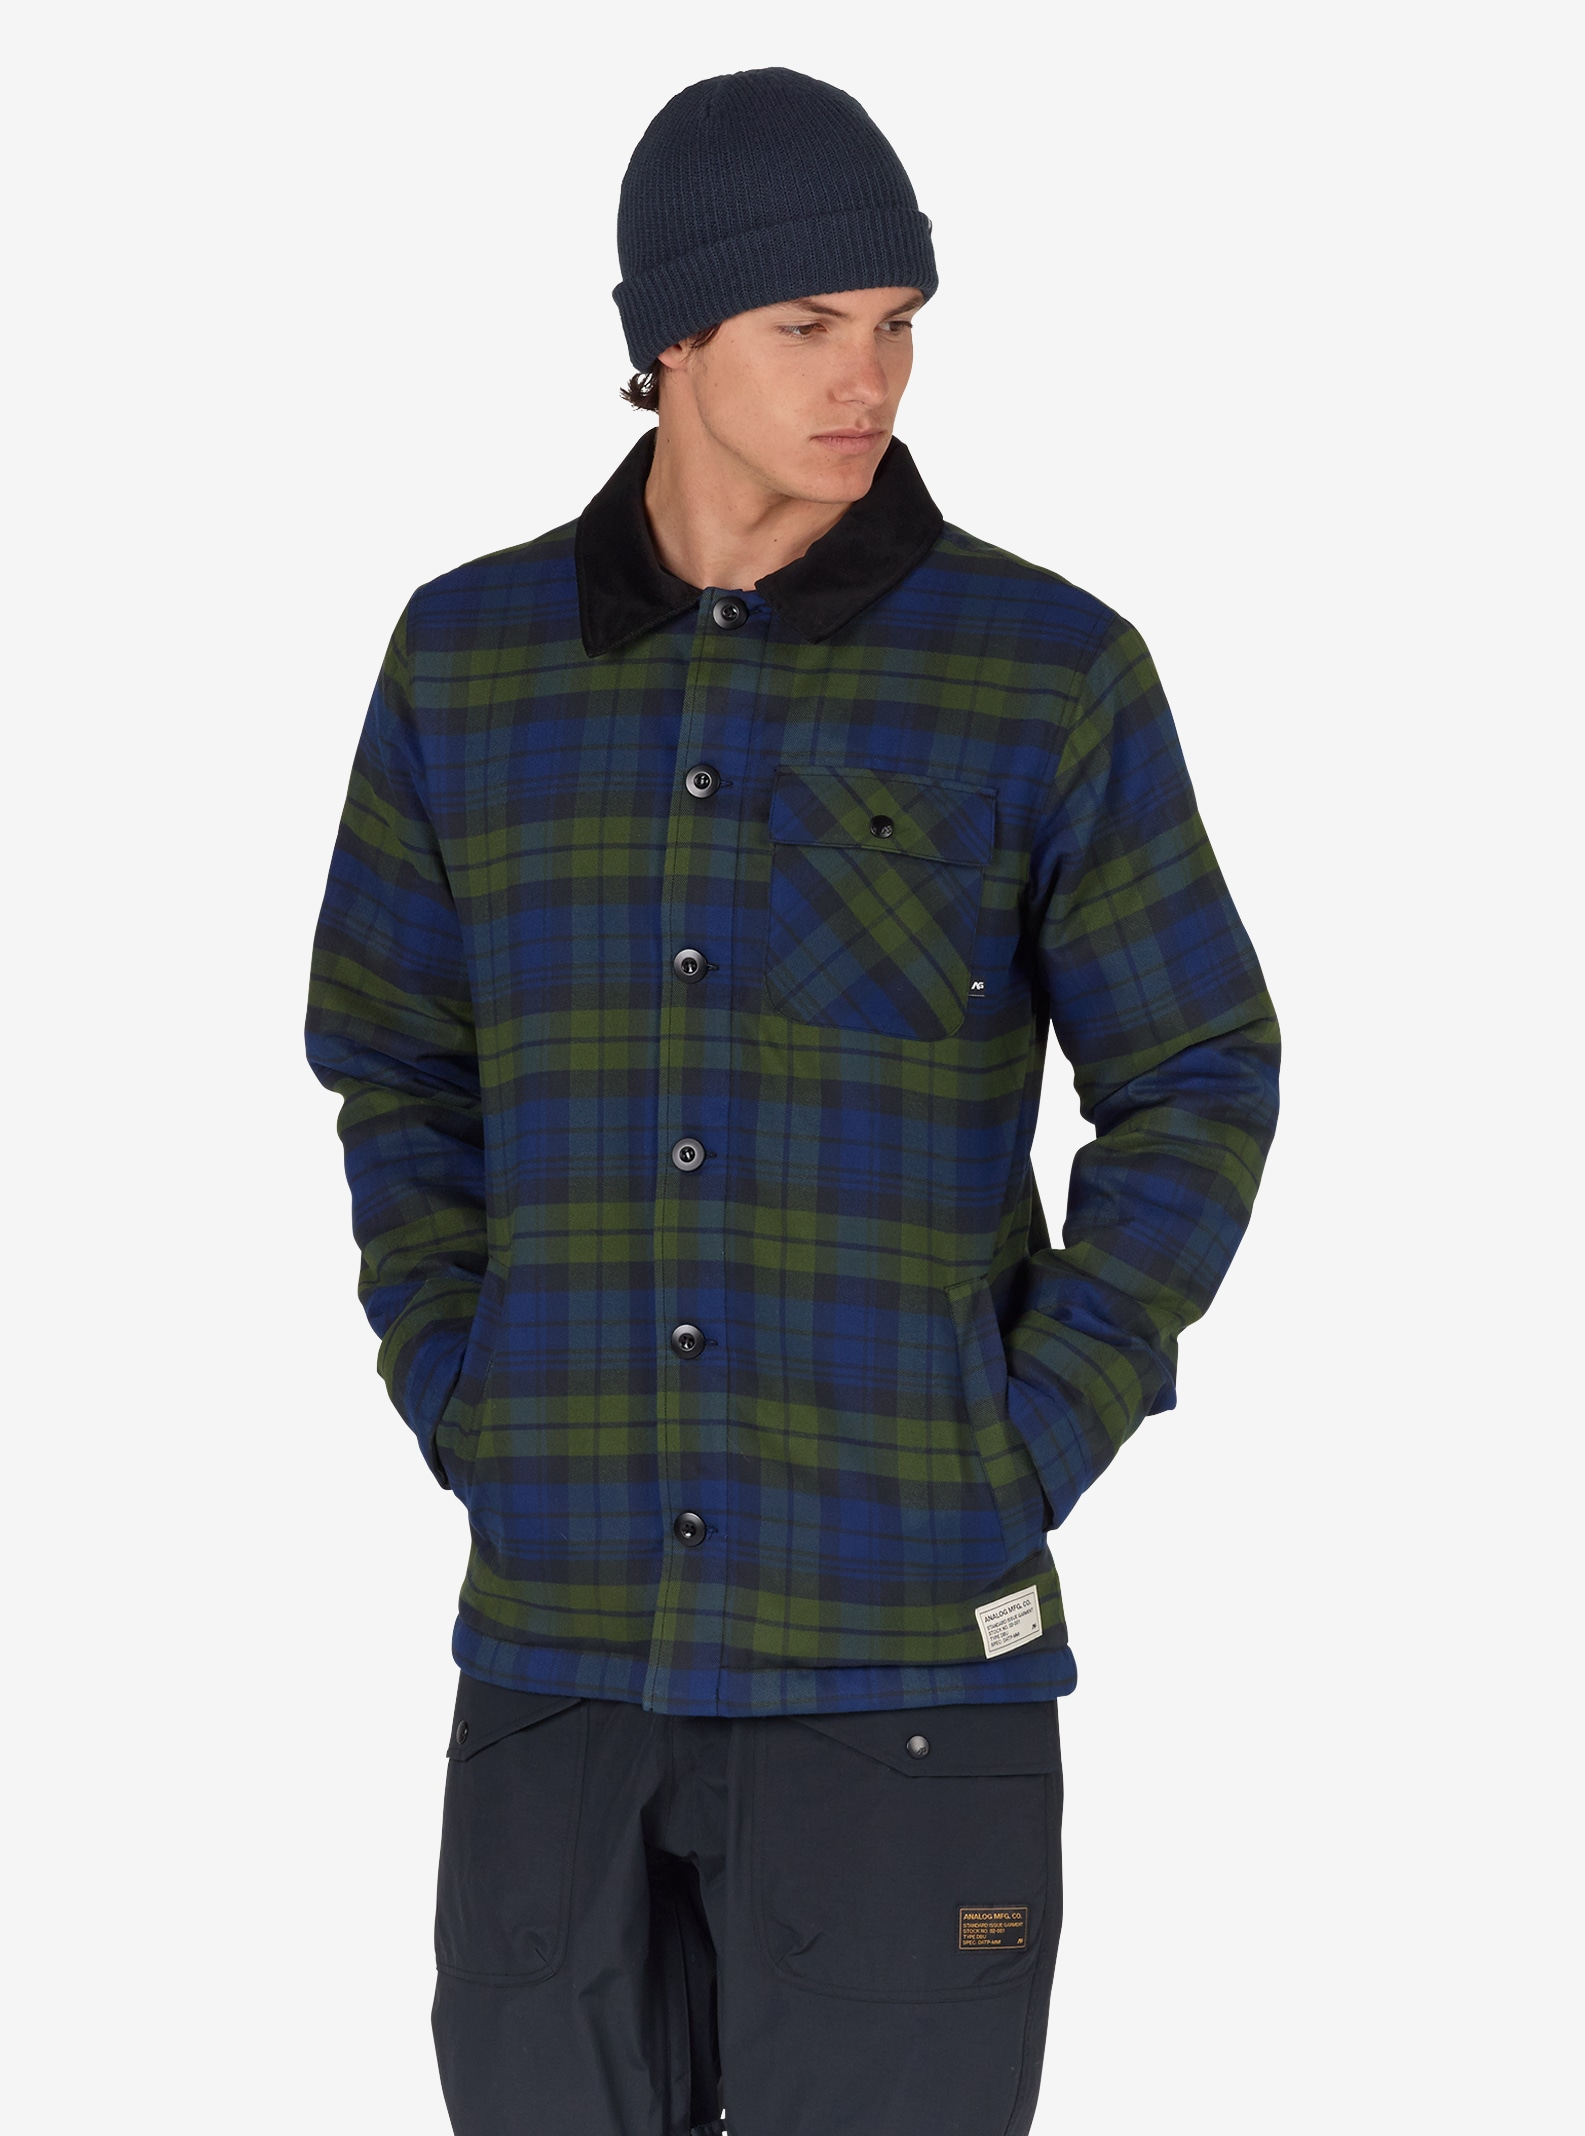 Analog - ATF Daily Driver homme affichage en Deflate Gate Union Plaid